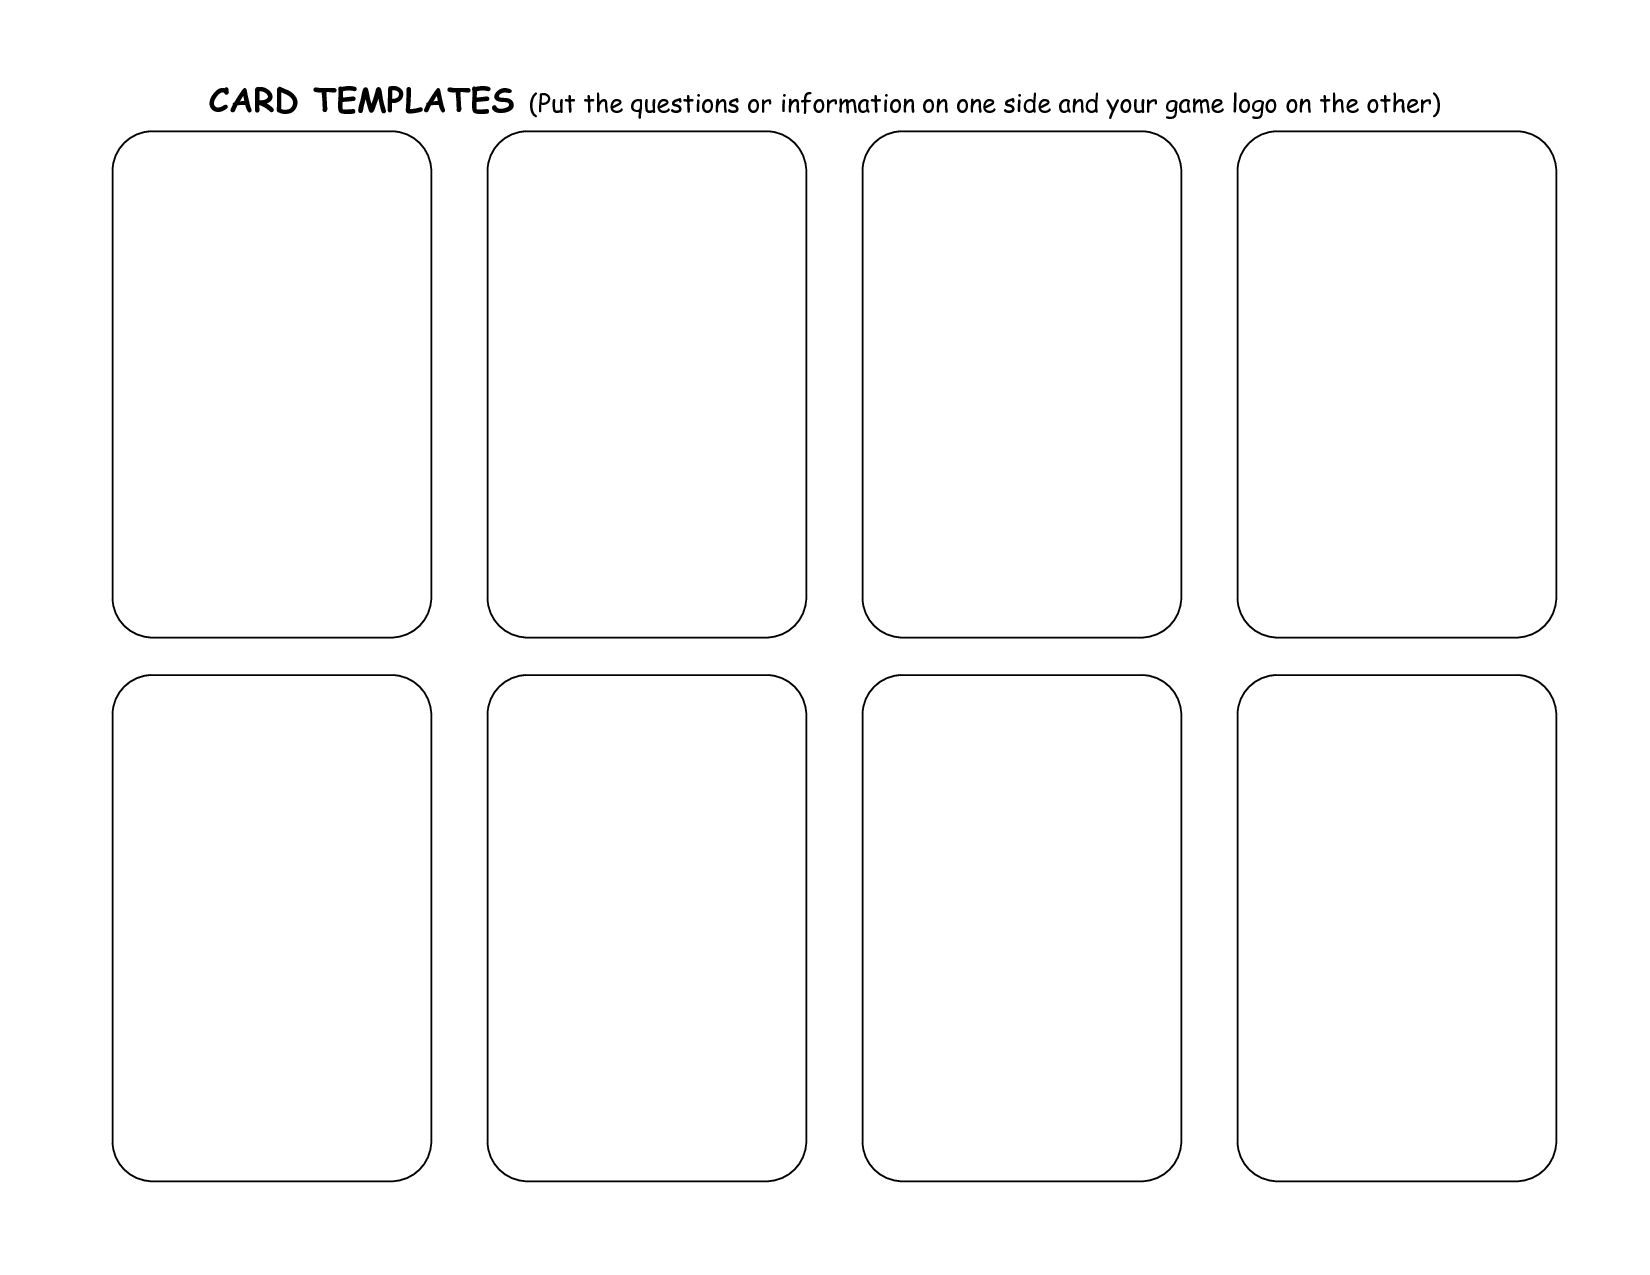 Blank Playing Card Template | One day | Pinterest